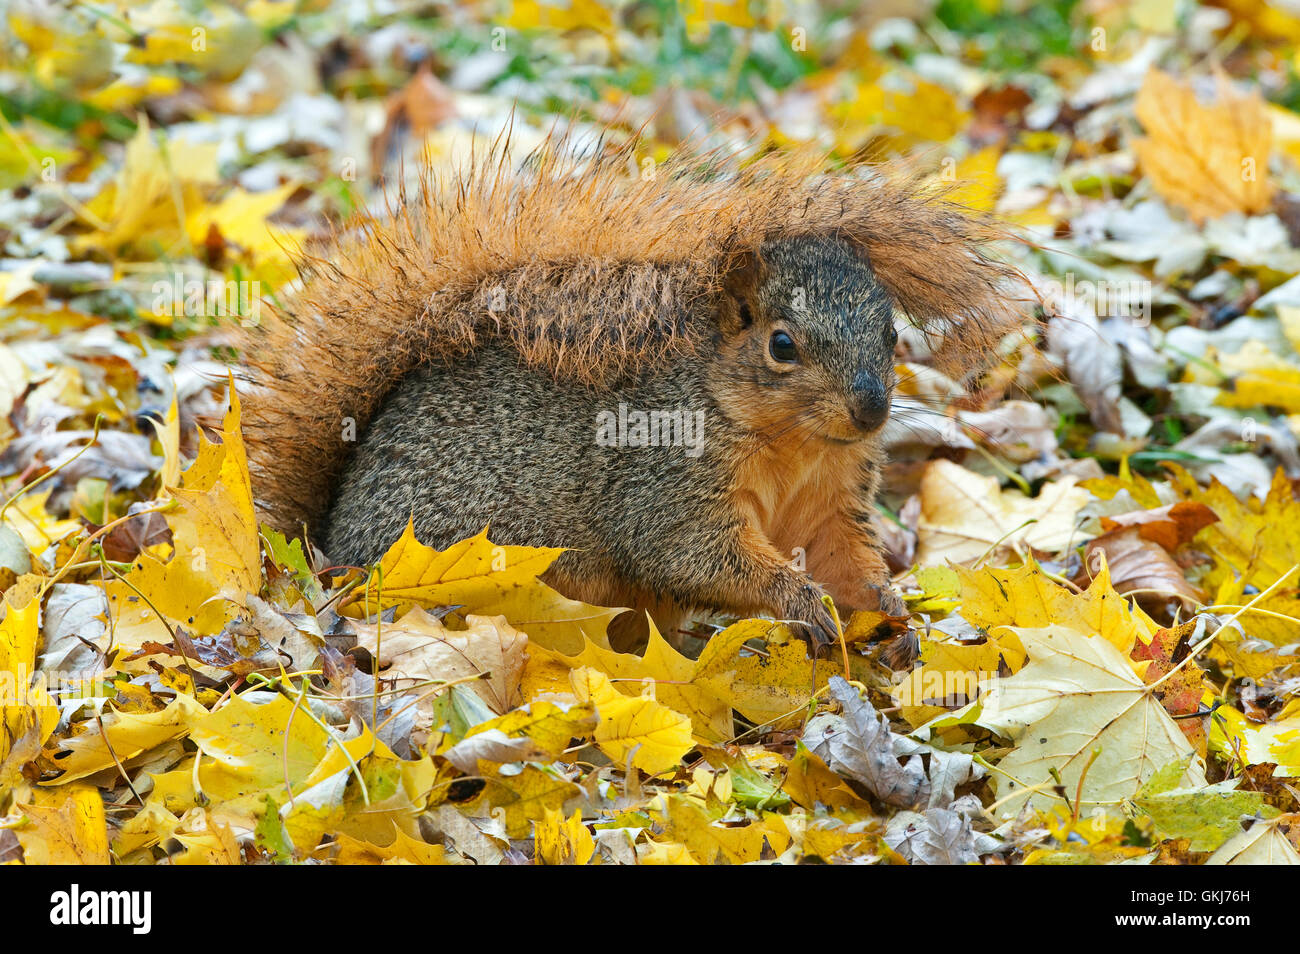 Eastern Fox Squirrel (Sciurus niger) Autumn, holding tail over head, protecting from rain, Eastern North America - Stock Image